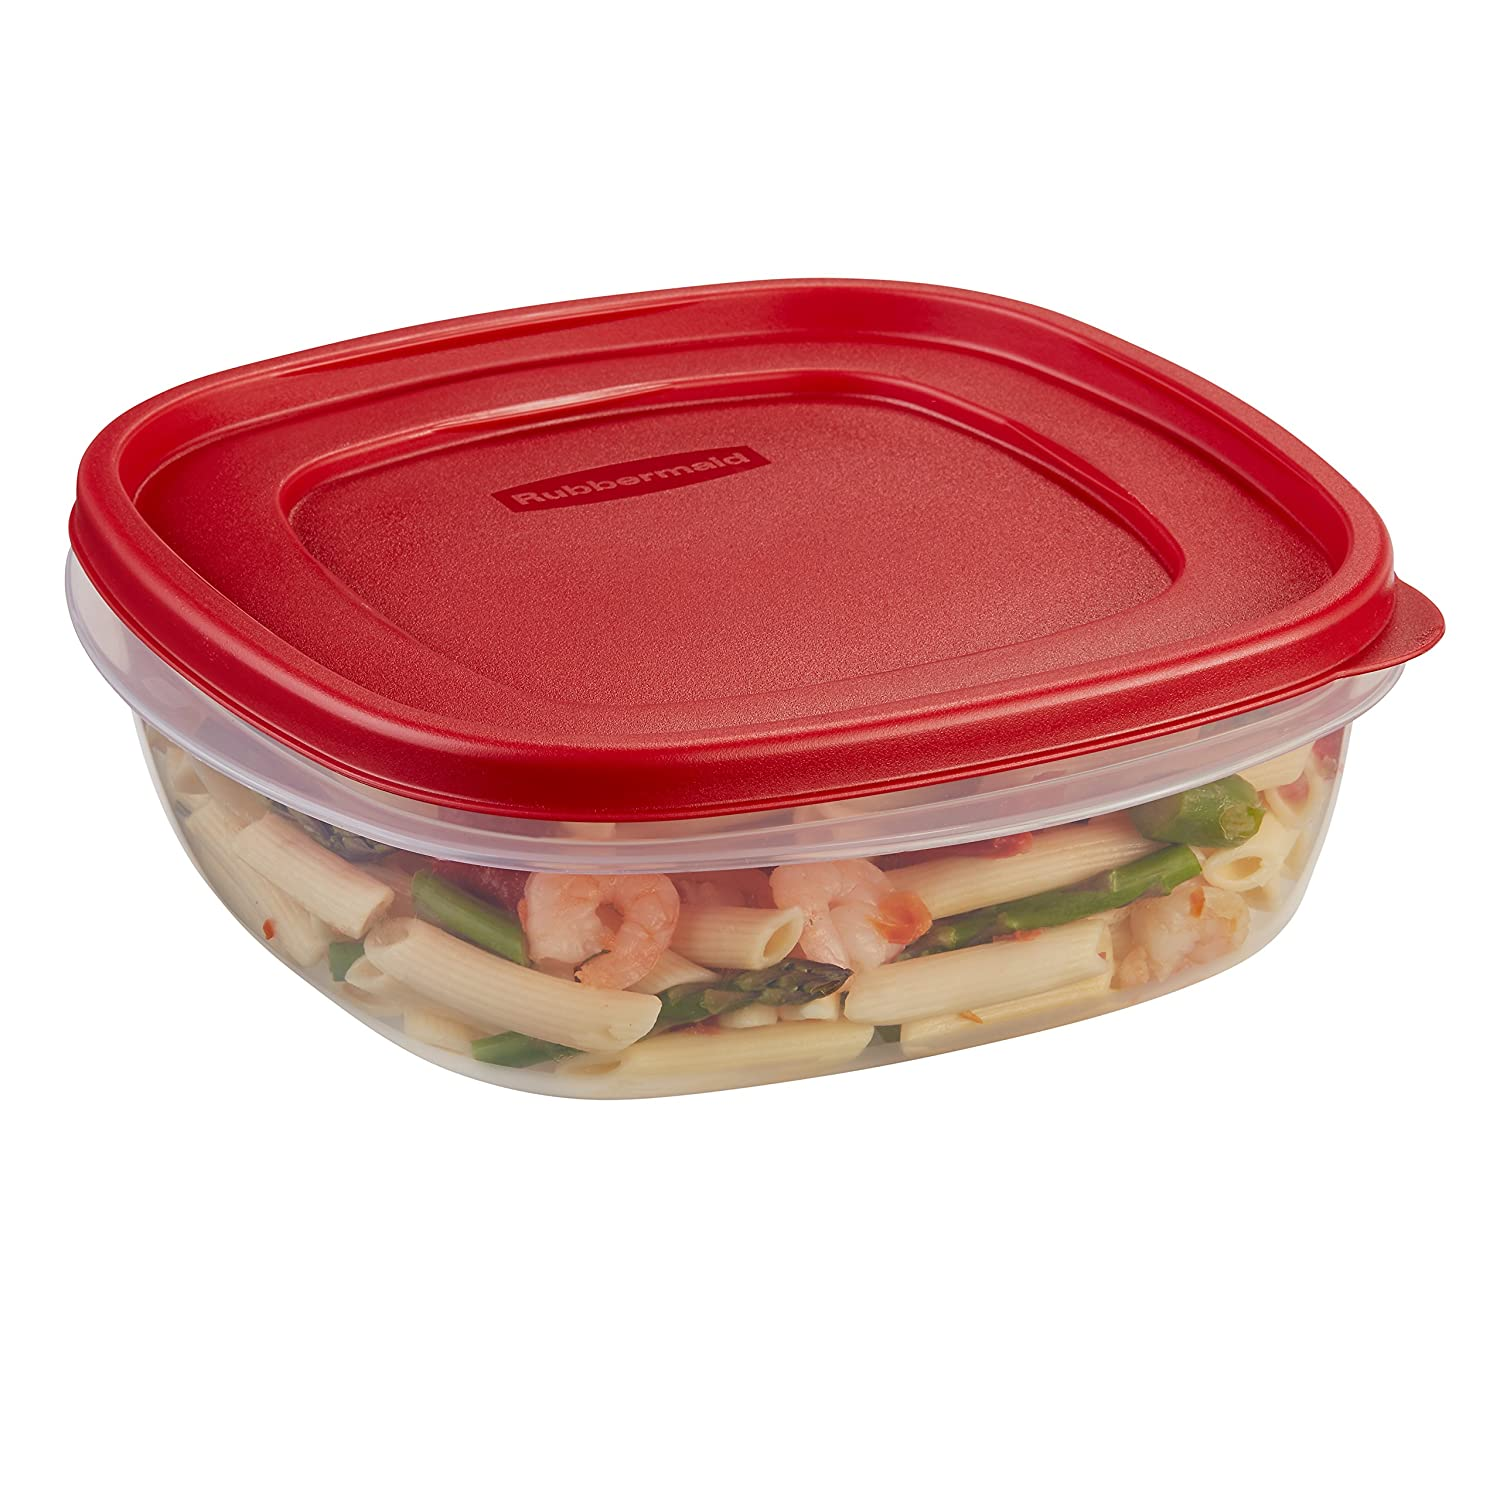 Rubbermaid Easy Find Lids Food Storage Container, 14 Cup, 4-Pack, Red 2053299